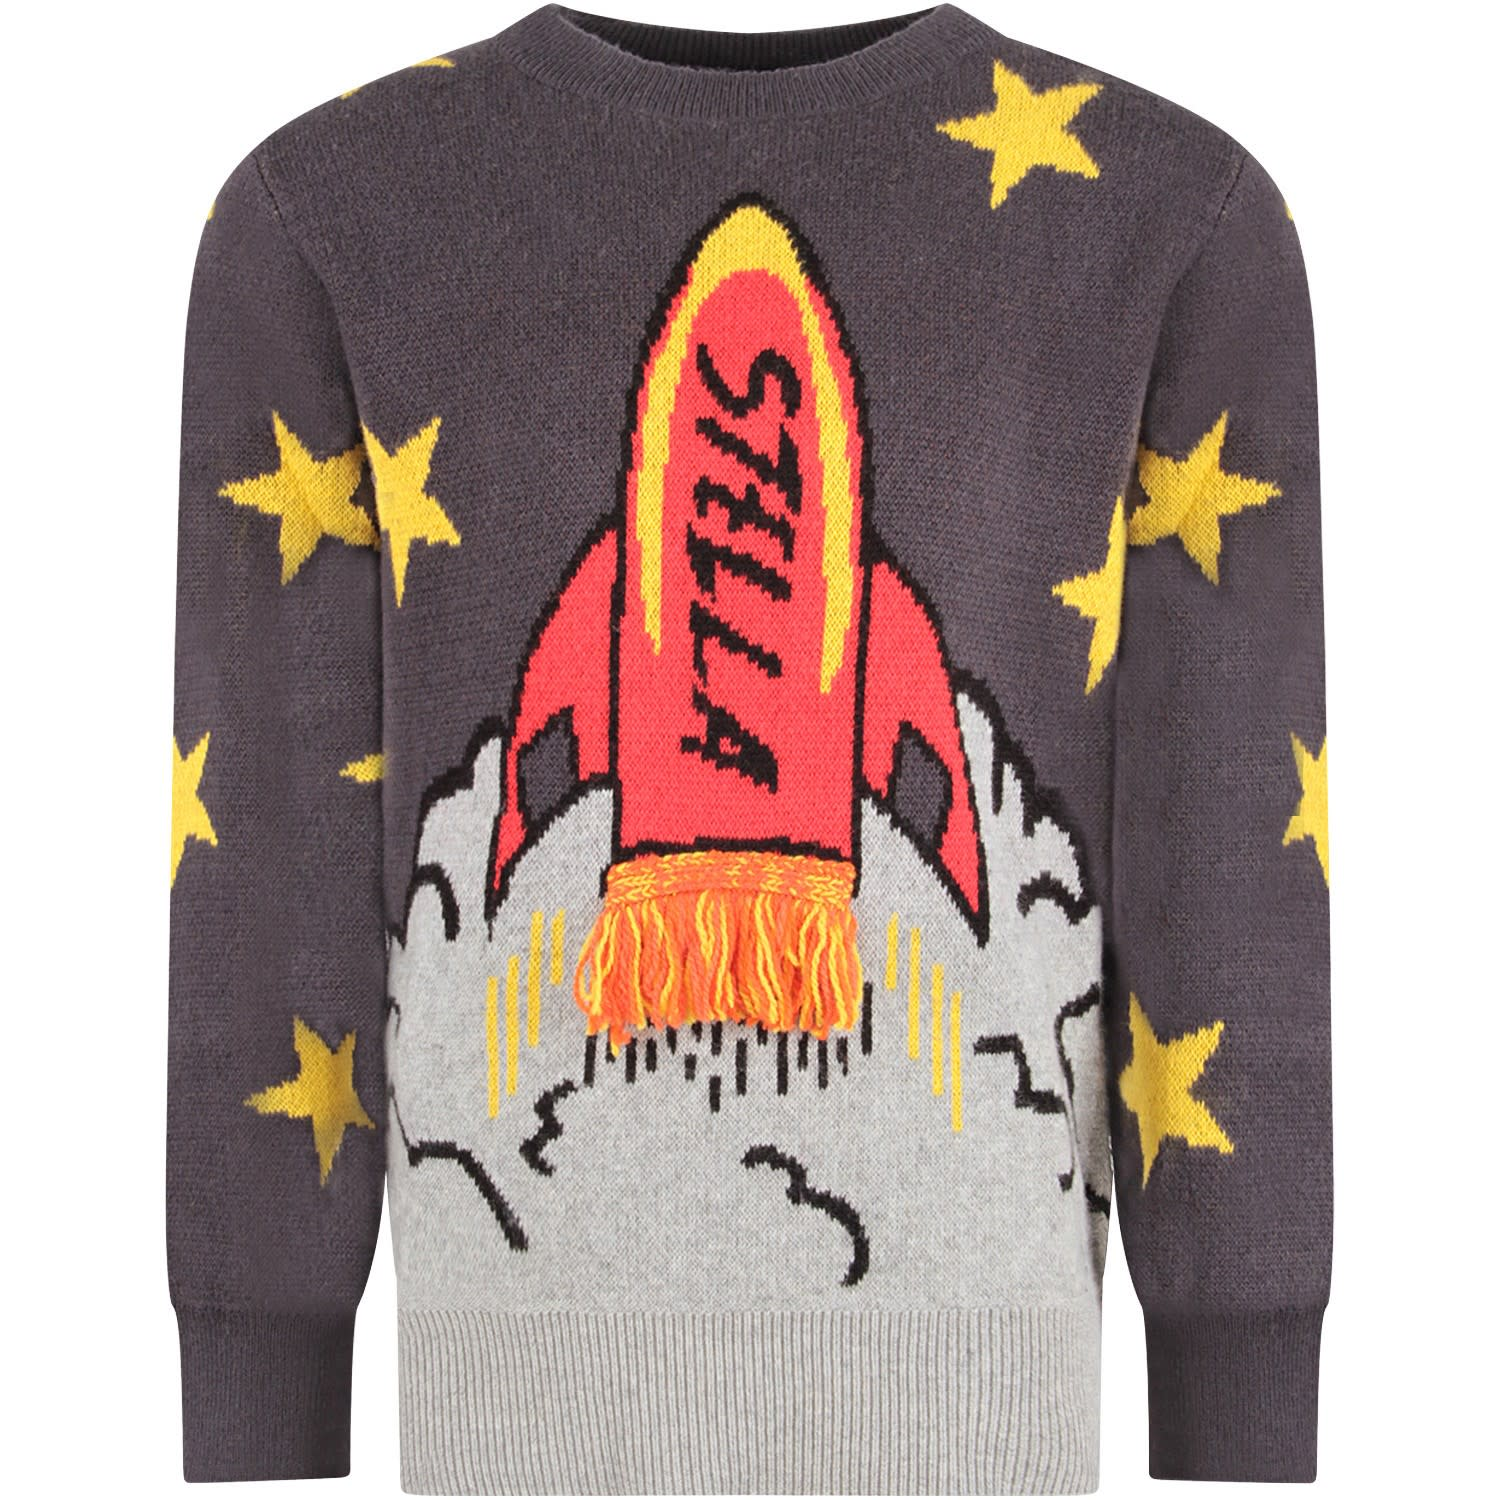 Color: Grey Grey sweater with long sleeves and ribbed crew-neck, cuffs and hemline. It is embellished with colorful shuttle with black logo and fringes, on the front and yellow stars all-over. 95% Organic cotton 5% Elastan. Hand wash.